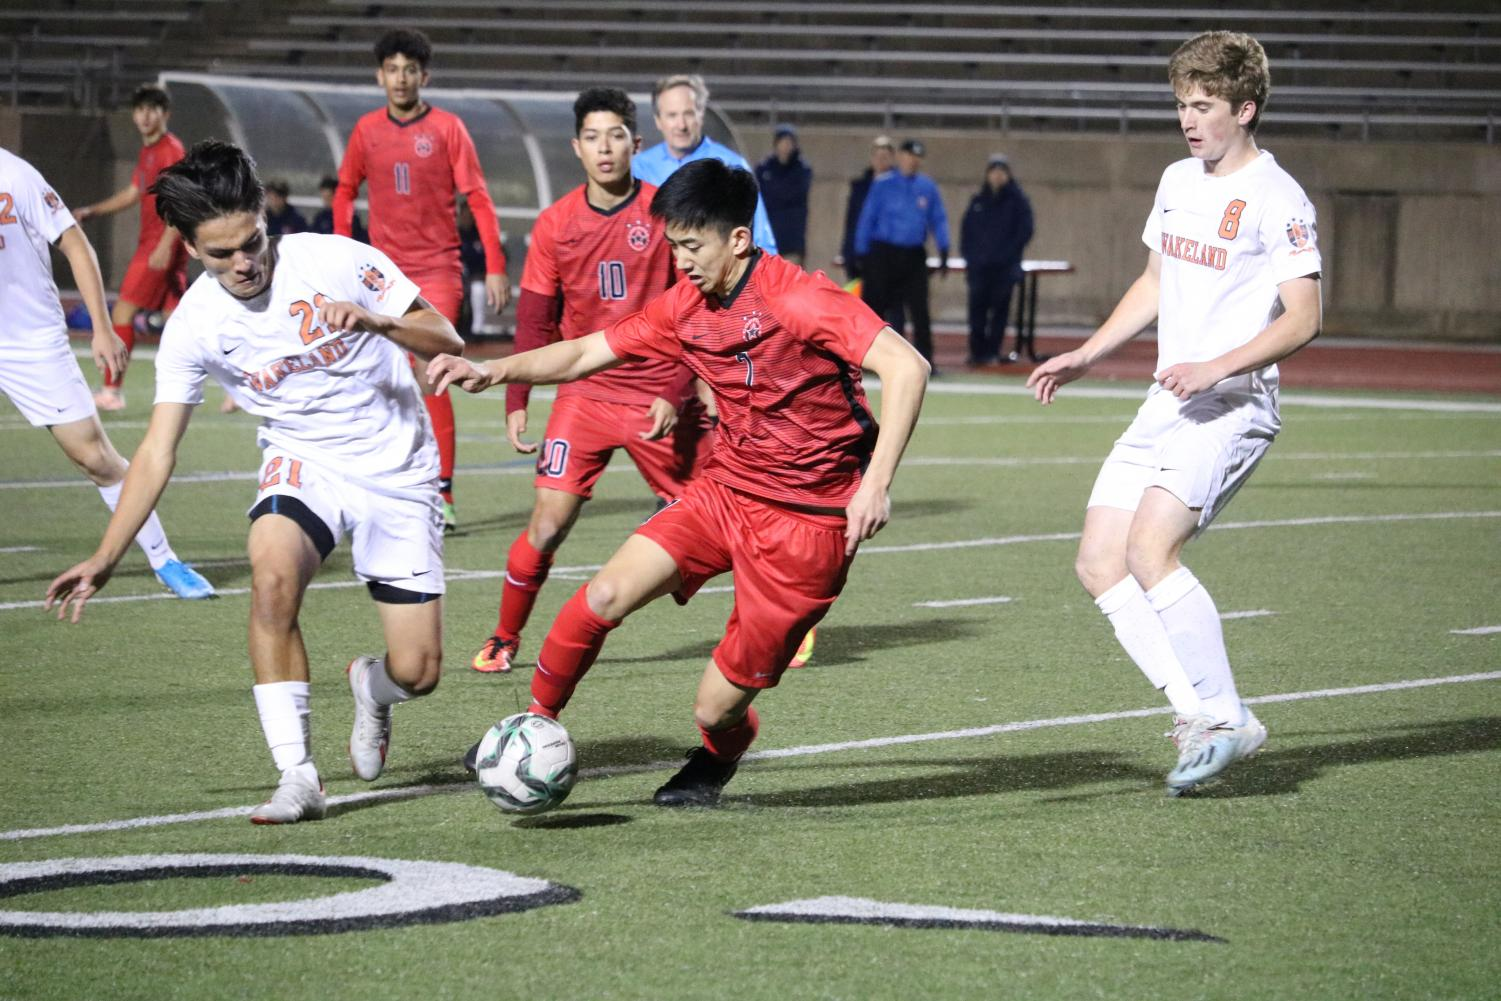 Coppell senior midfielder Ben Wang fights for possession with Frisco Wakeland's Juan Ardila during the scrimmage on Thursday at Buddy Echols Field. The Cowboys defeated the Class 5A runners-up, 4-3, on a free kick.